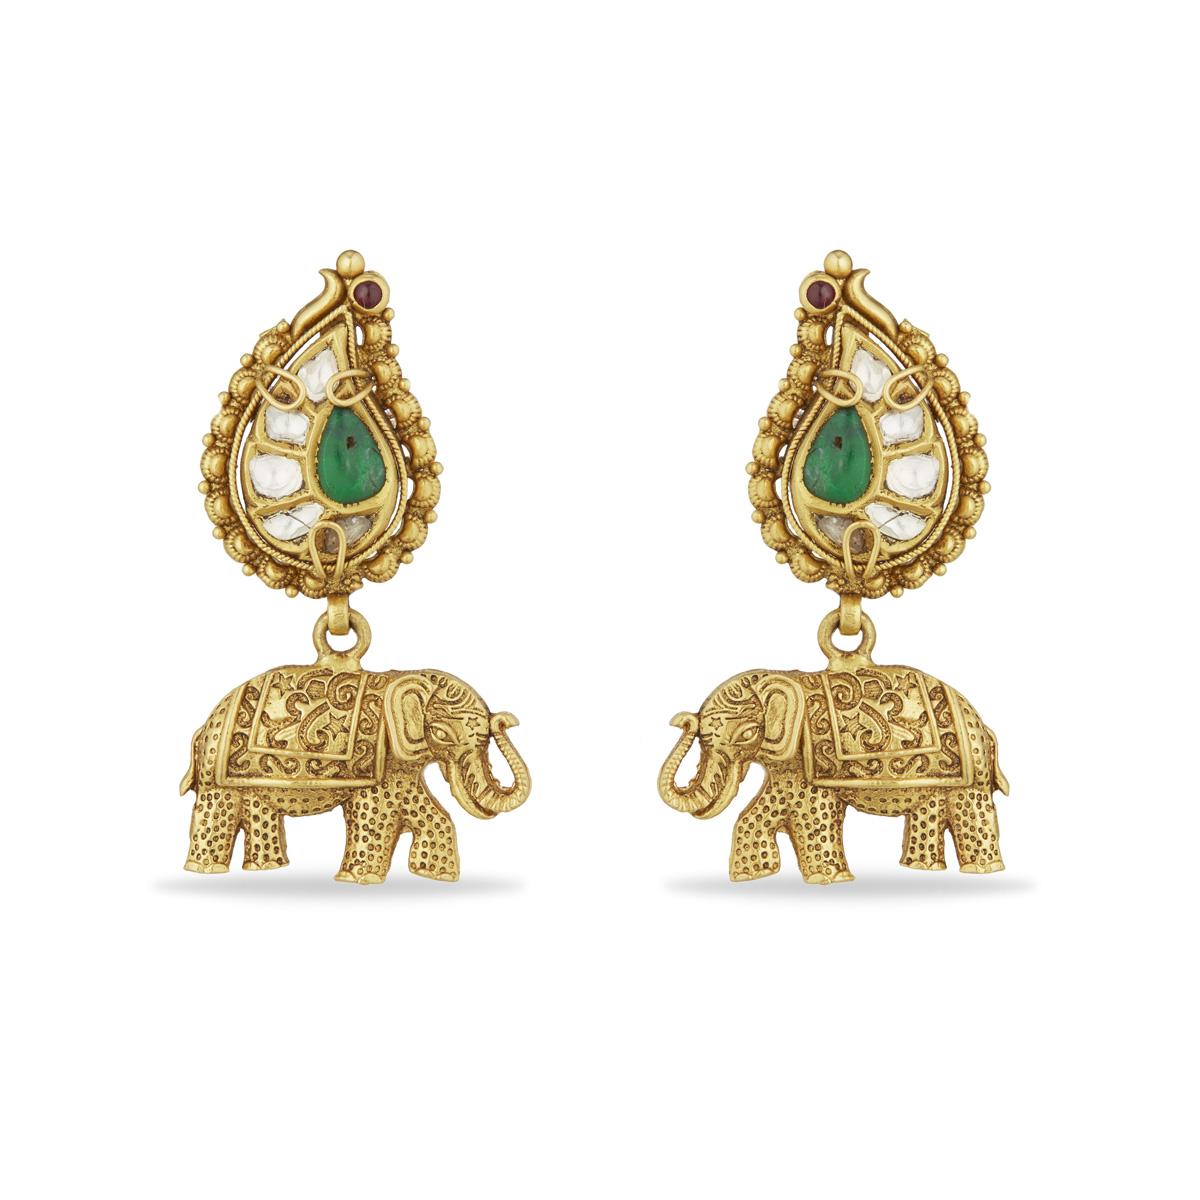 The Krithika Earrings